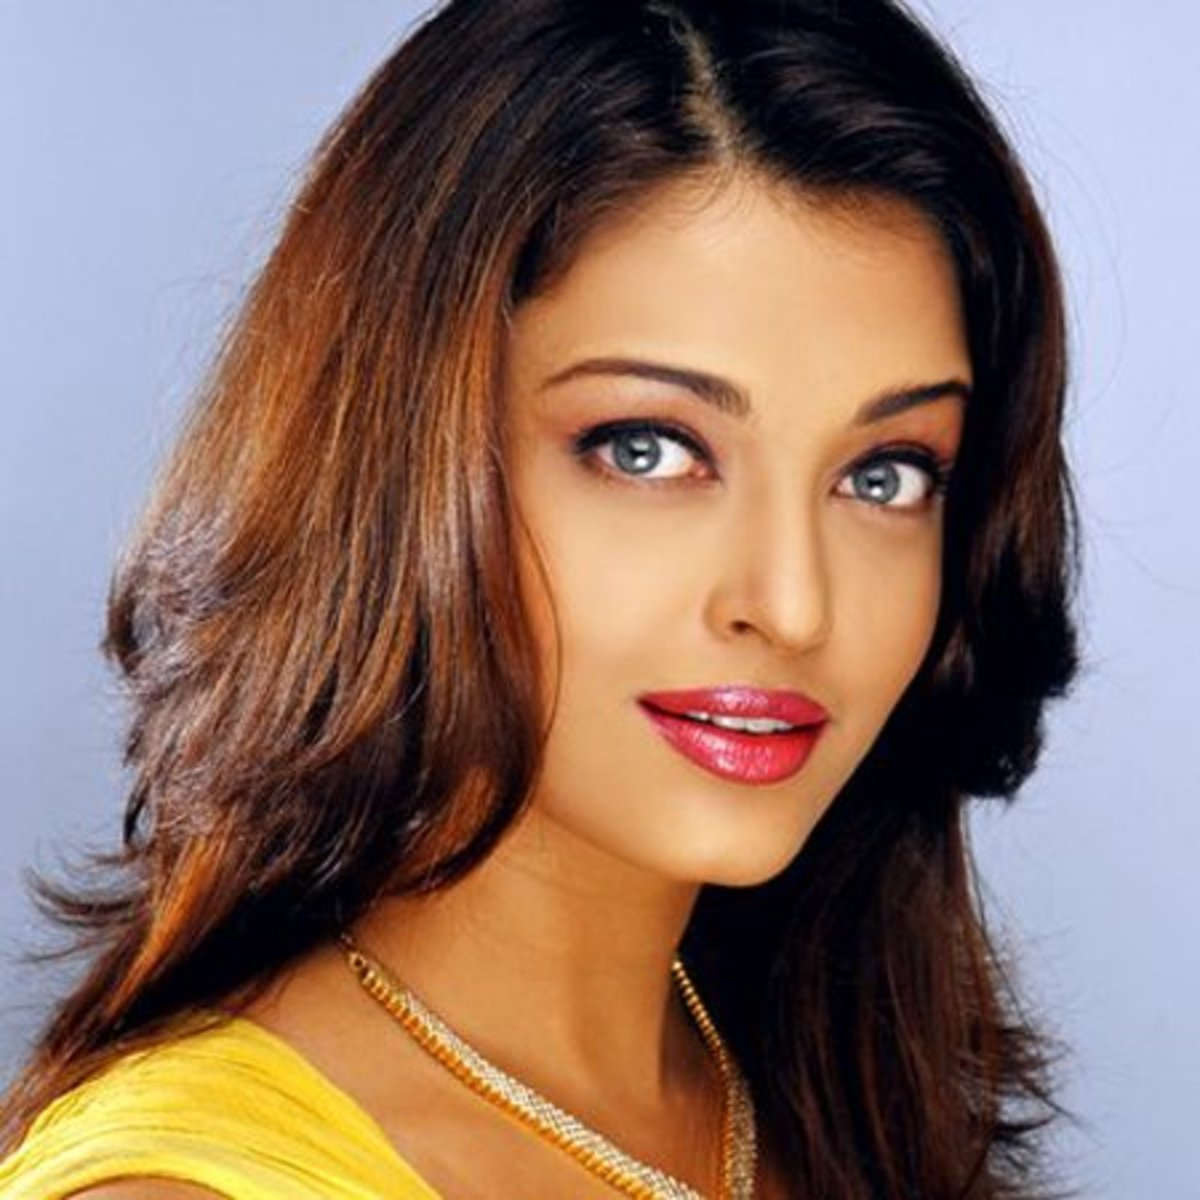 Top 5 English Movies of Aishwarya Rai Bachchan